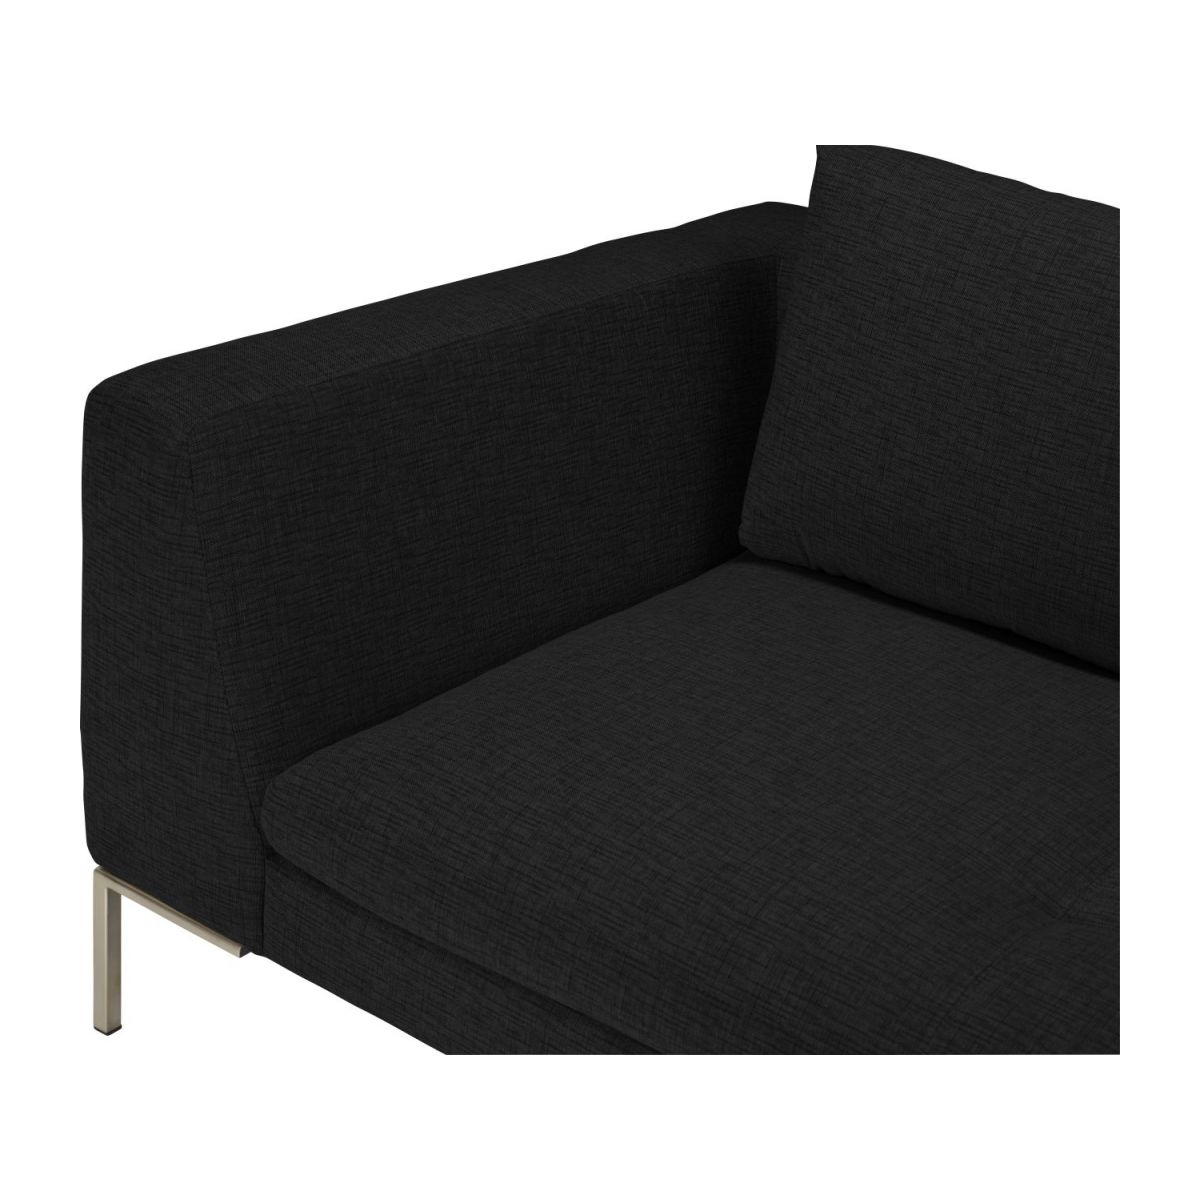 2 seater sofa in Ancio fabric, nero n°7